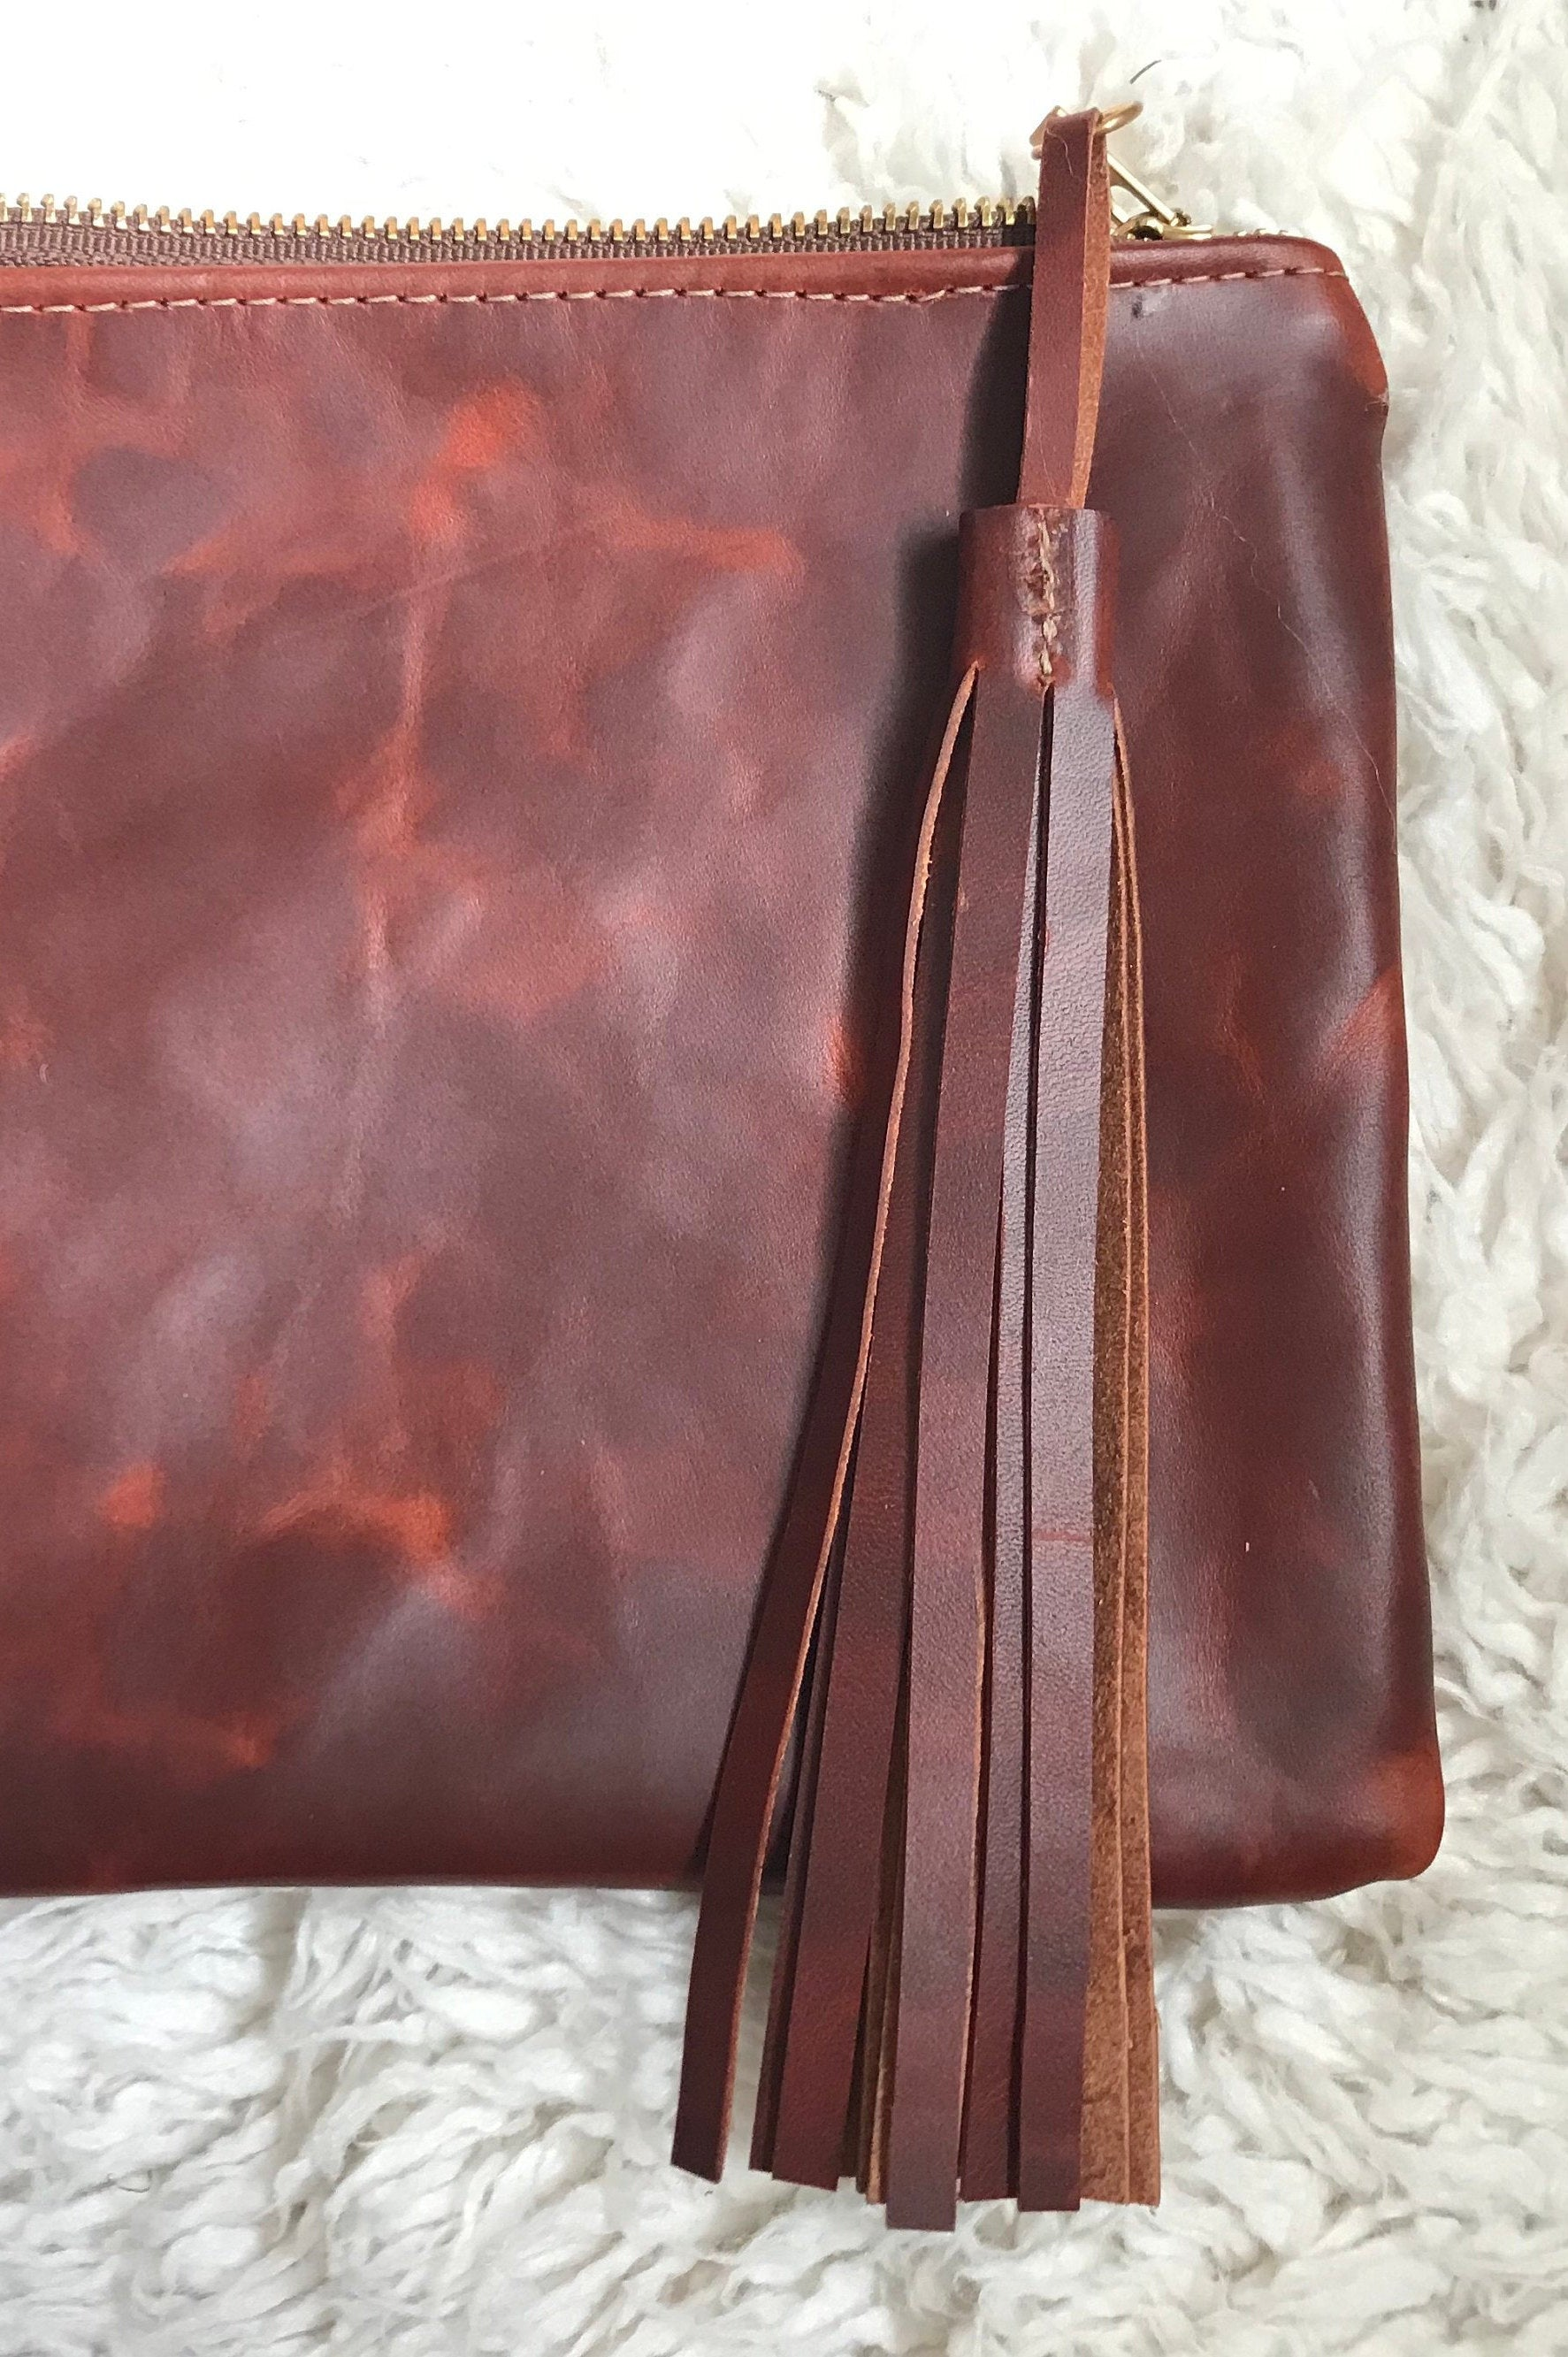 Red brown oiled leather tassel shown attached to clutch purse